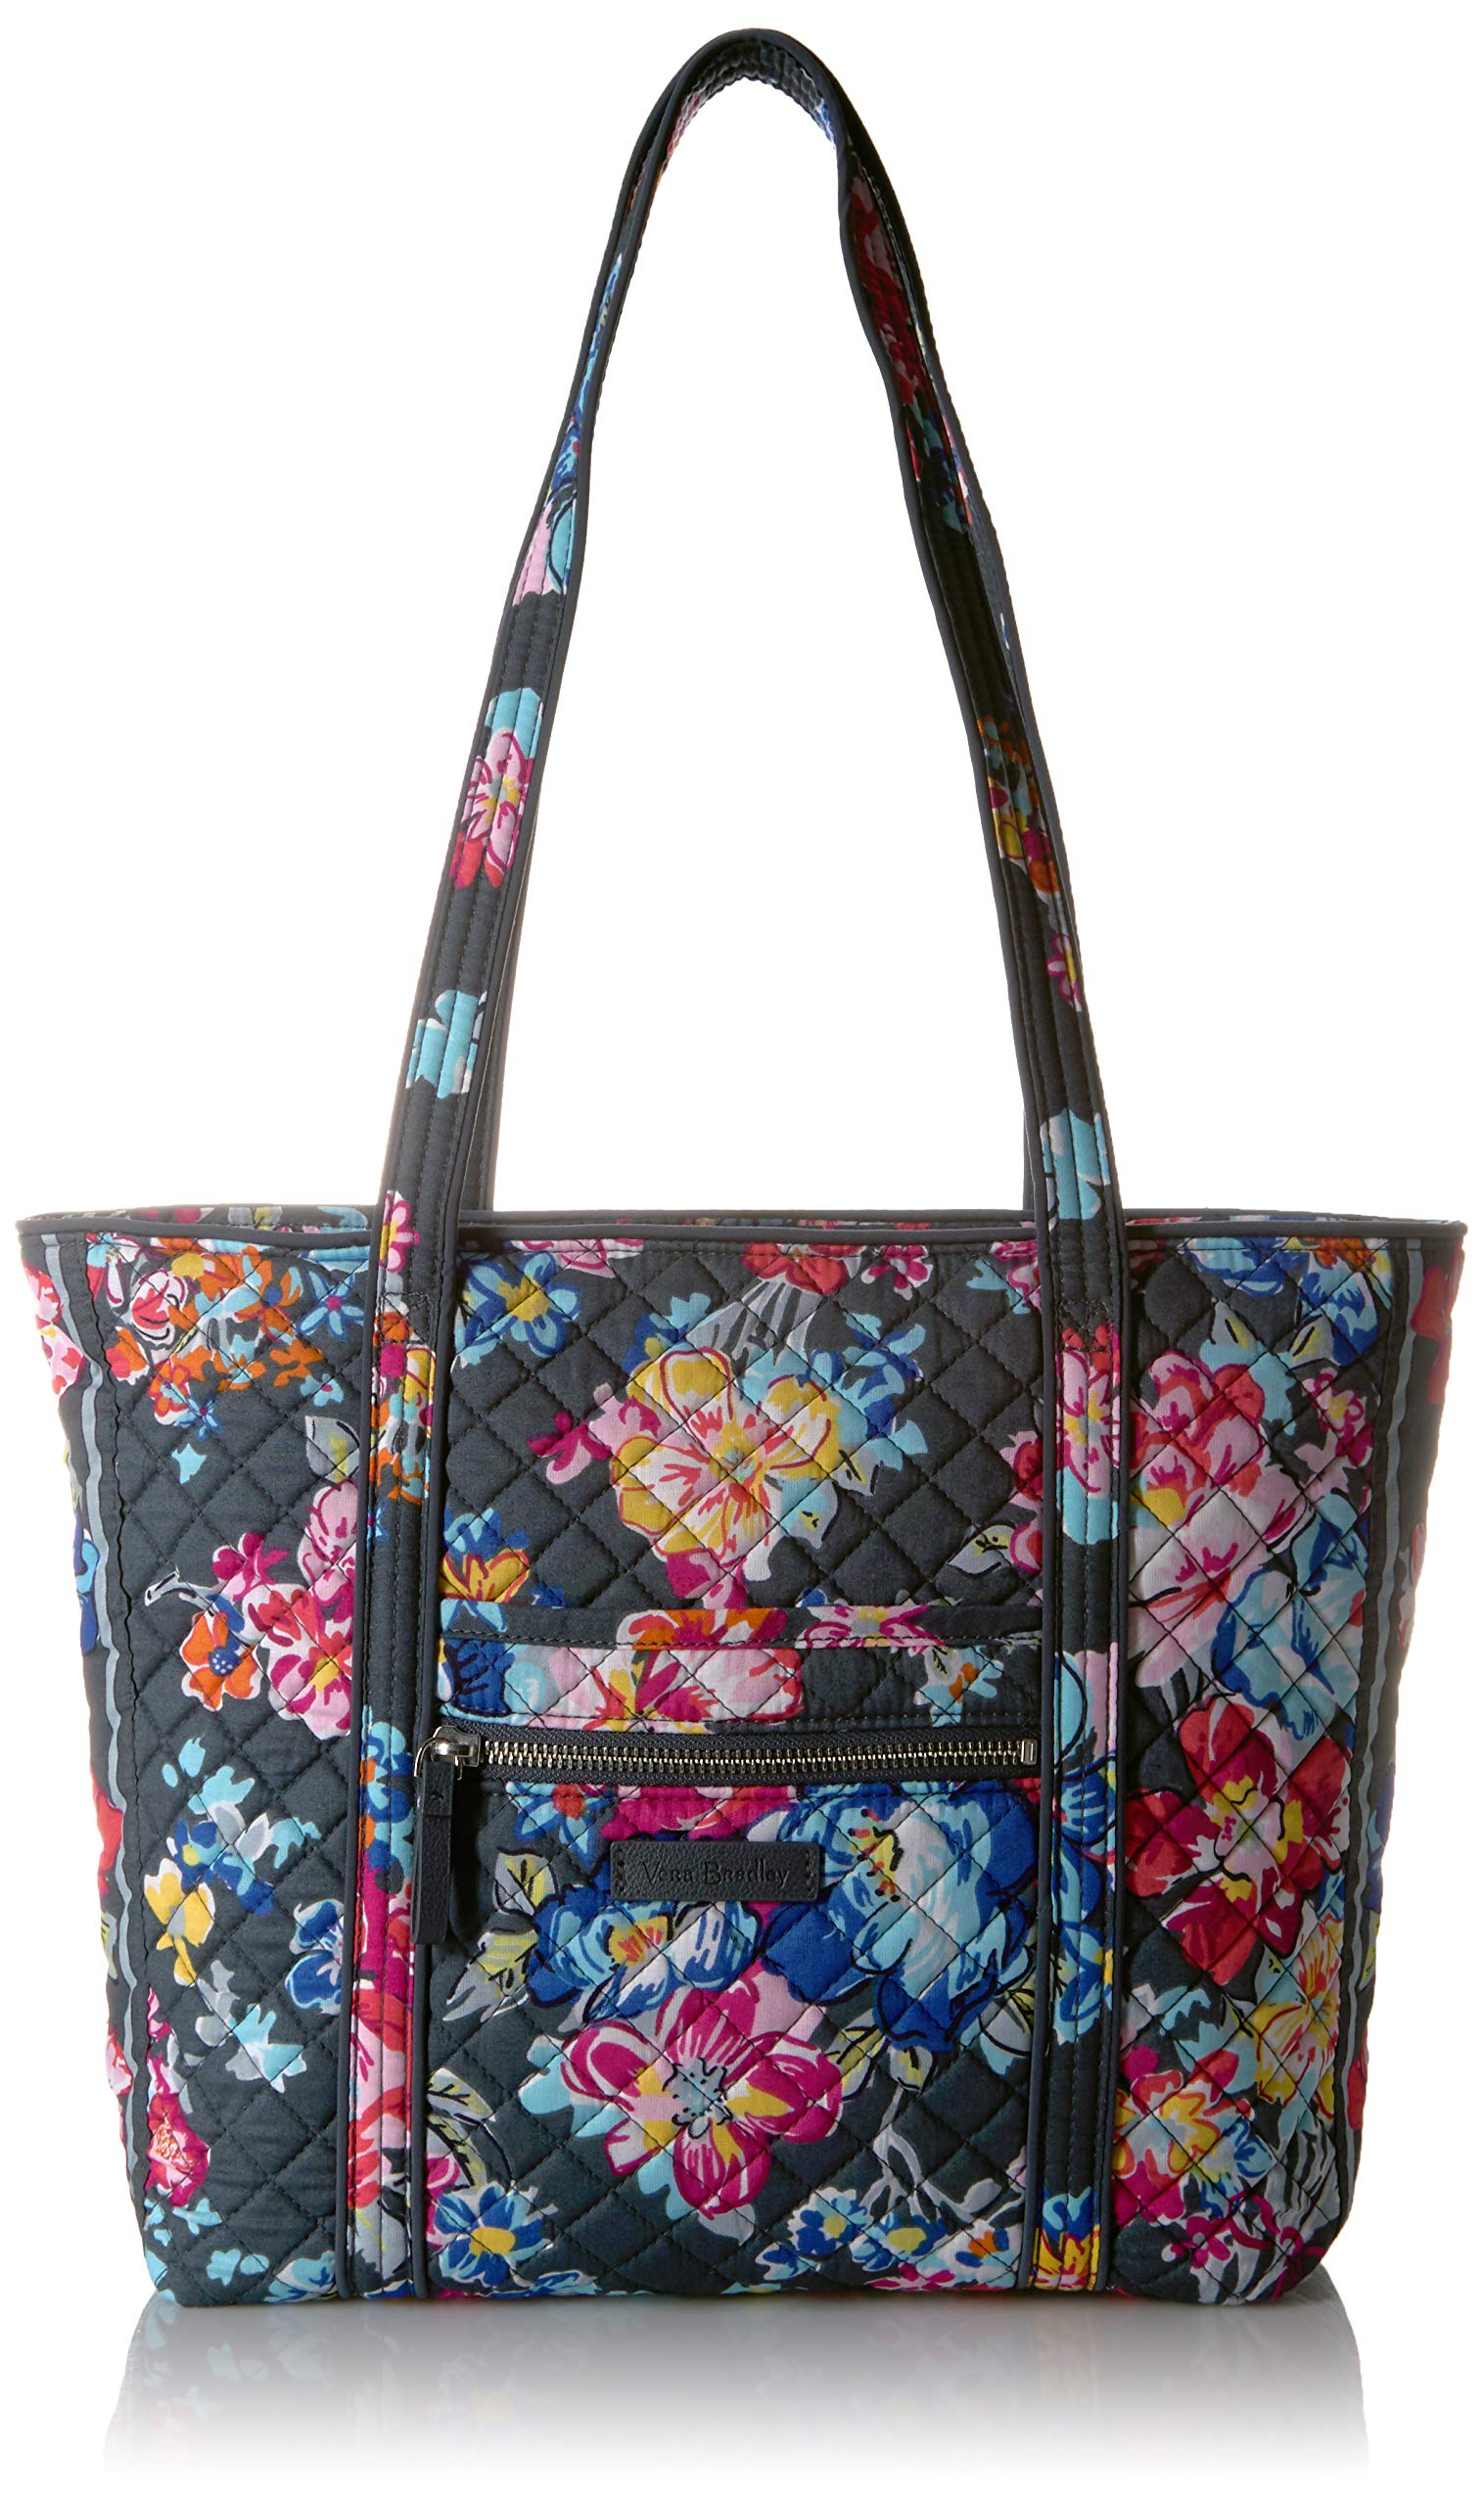 Vera Bradley Iconic Small Vera Tote, Signature Cotton, pretty Posies